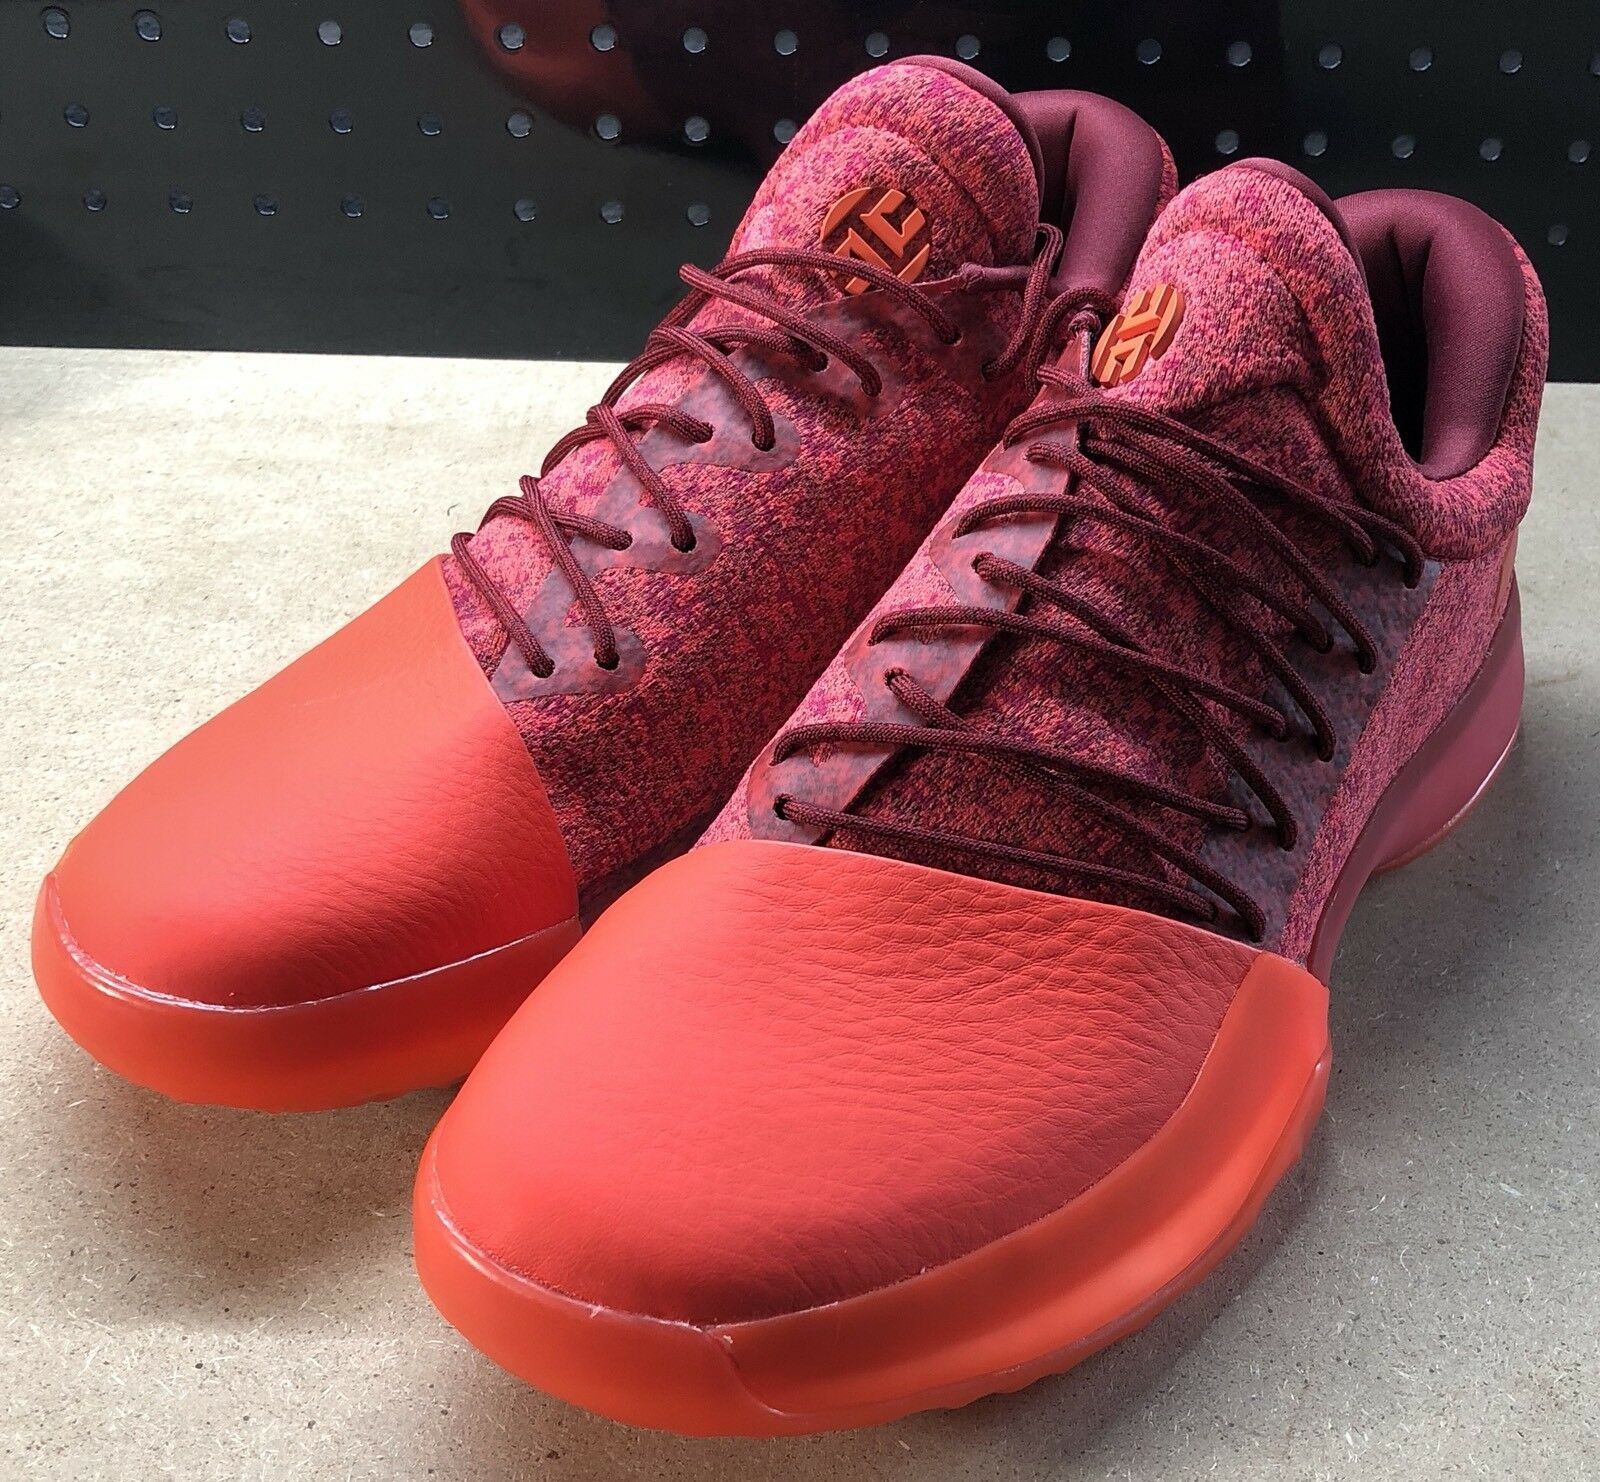 Adidas James Harden Vol 1 Red Glare Basketball Shoes Size 11 B39501